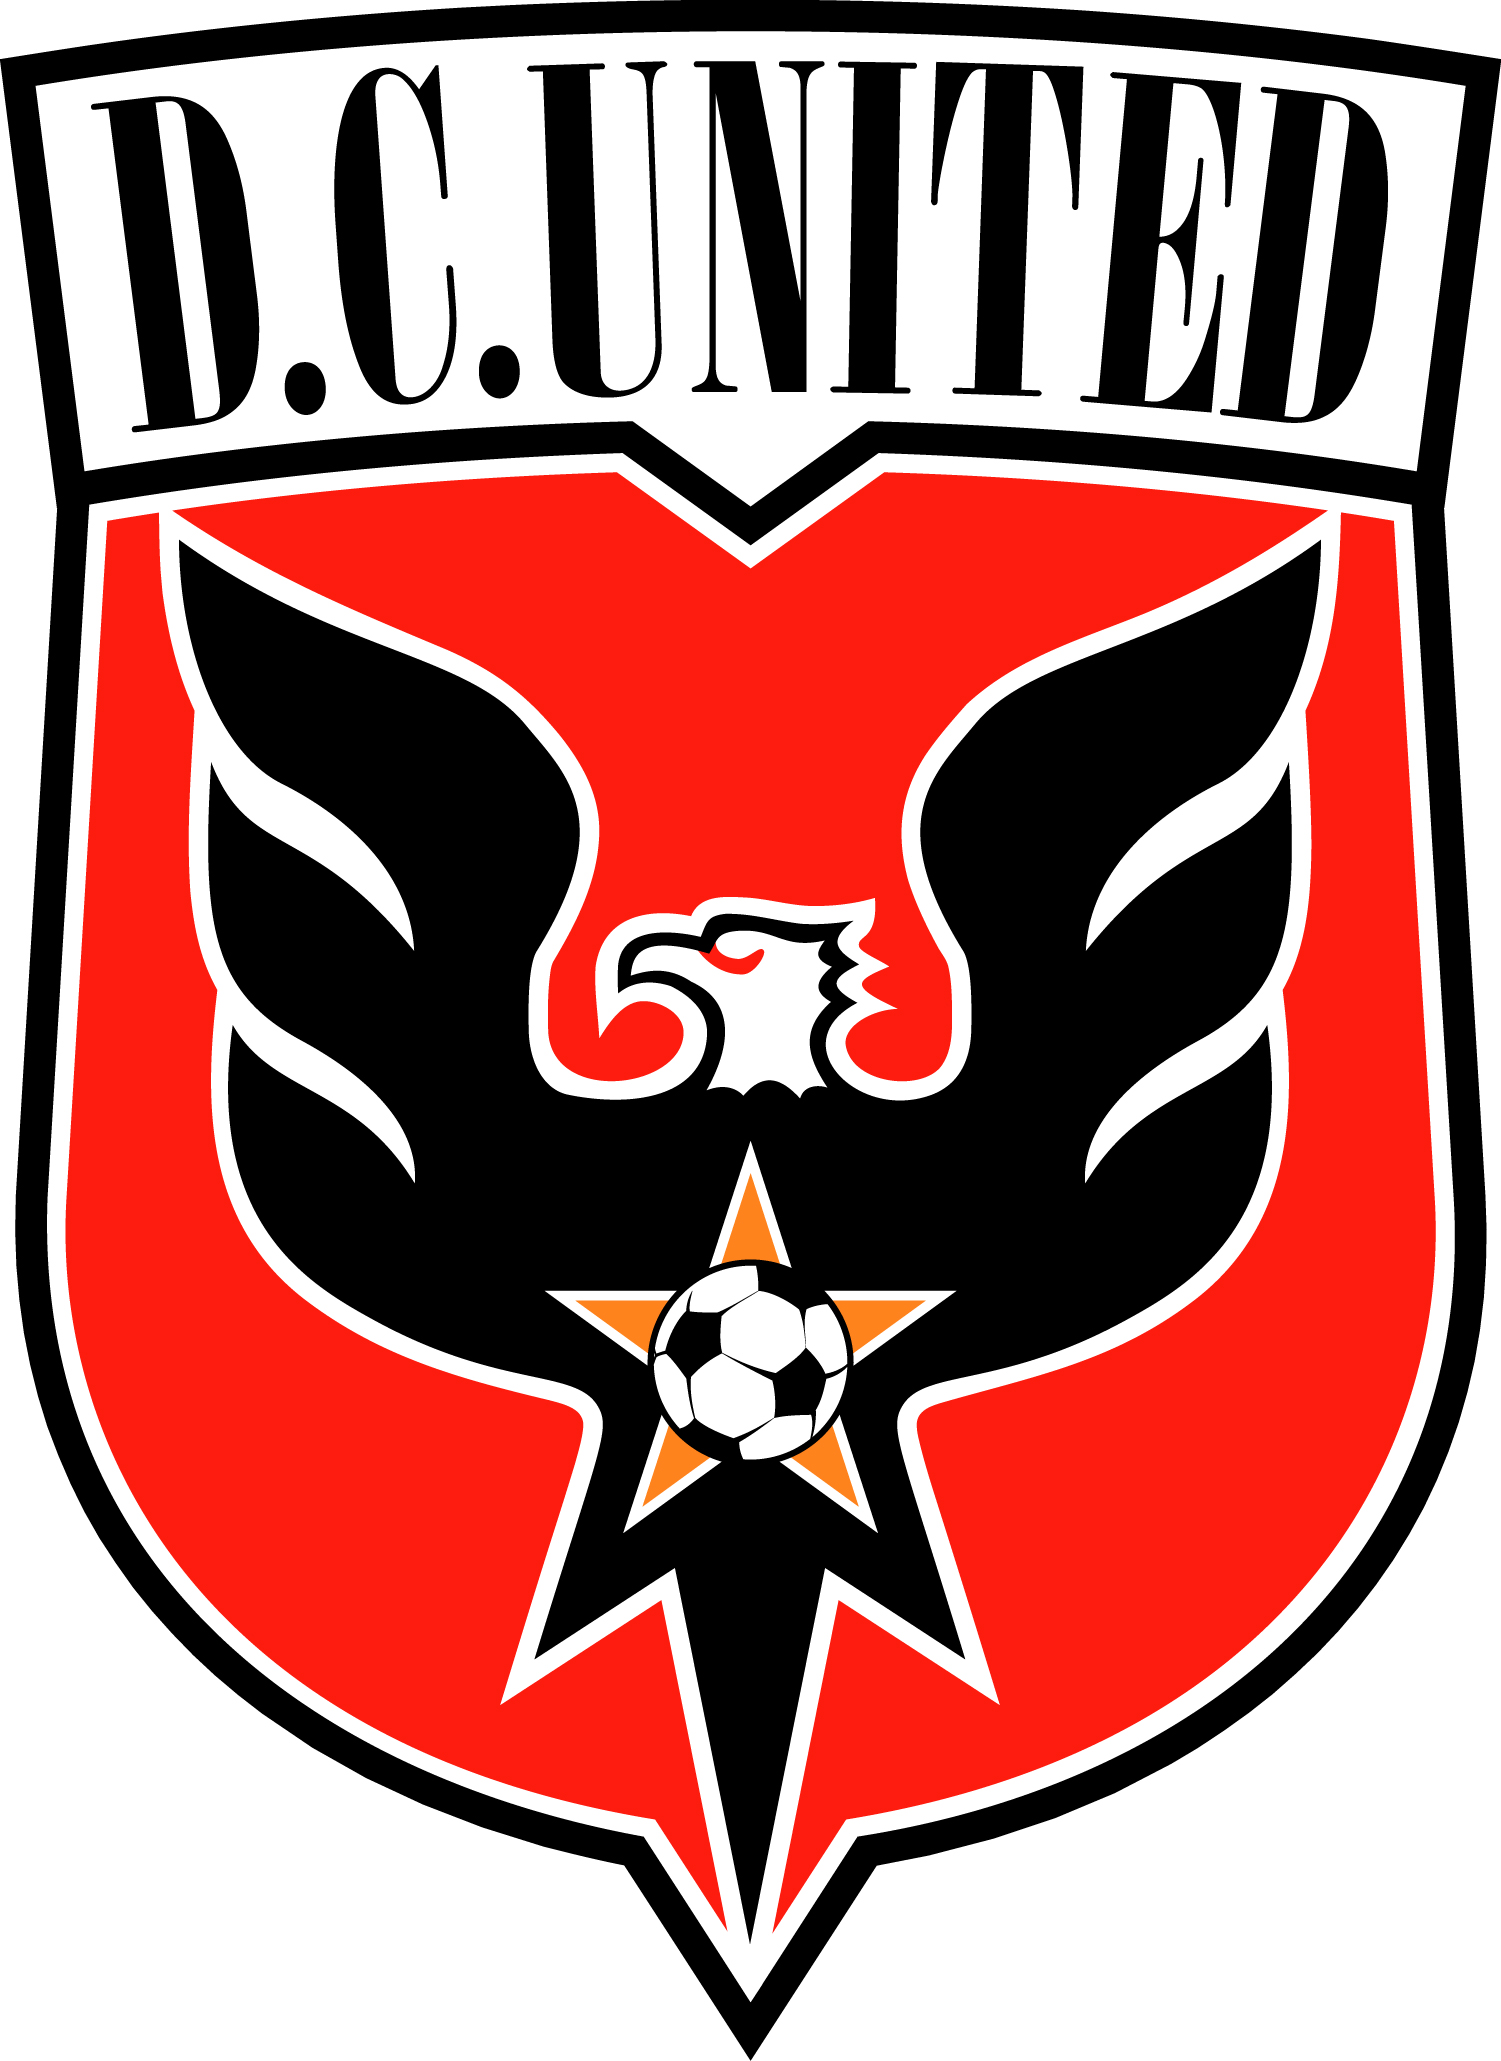 DC United Football Club Logo Wallpaper